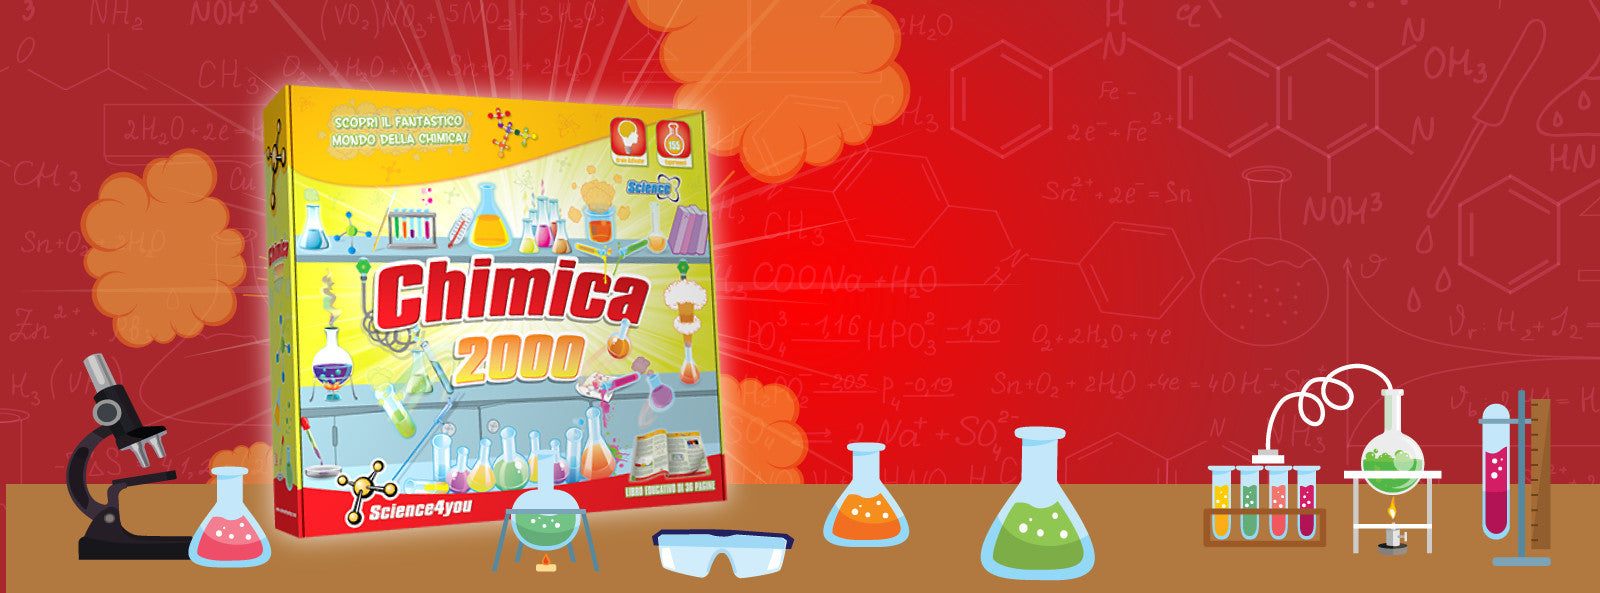 Chimica 2000 - Gioco Educativo e Scientifico